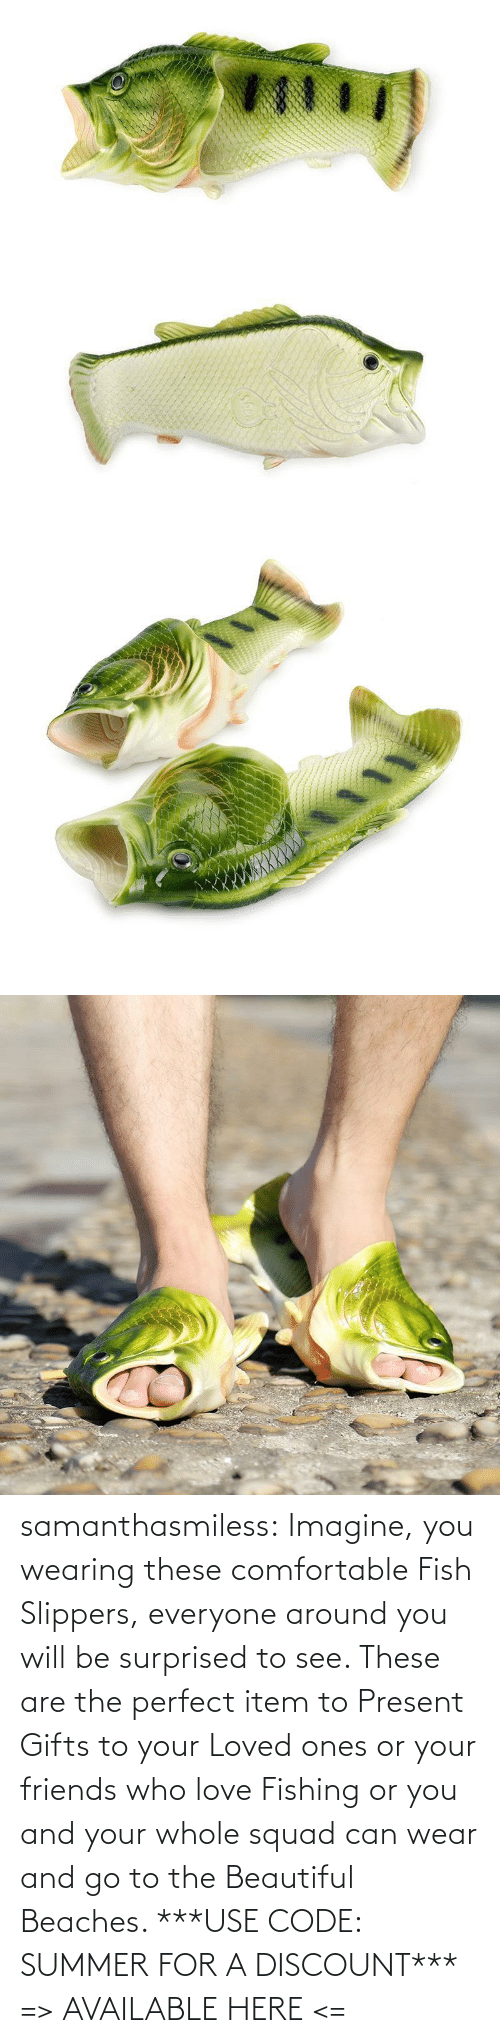 These: samanthasmiless: Imagine, you wearing these comfortable Fish Slippers, everyone around you will be surprised to see. These are the perfect item to Present Gifts to your Loved ones or your friends who love Fishing or you and your whole squad can wear and go to the Beautiful Beaches.  ***USE CODE: SUMMER FOR A DISCOUNT*** => AVAILABLE HERE <=